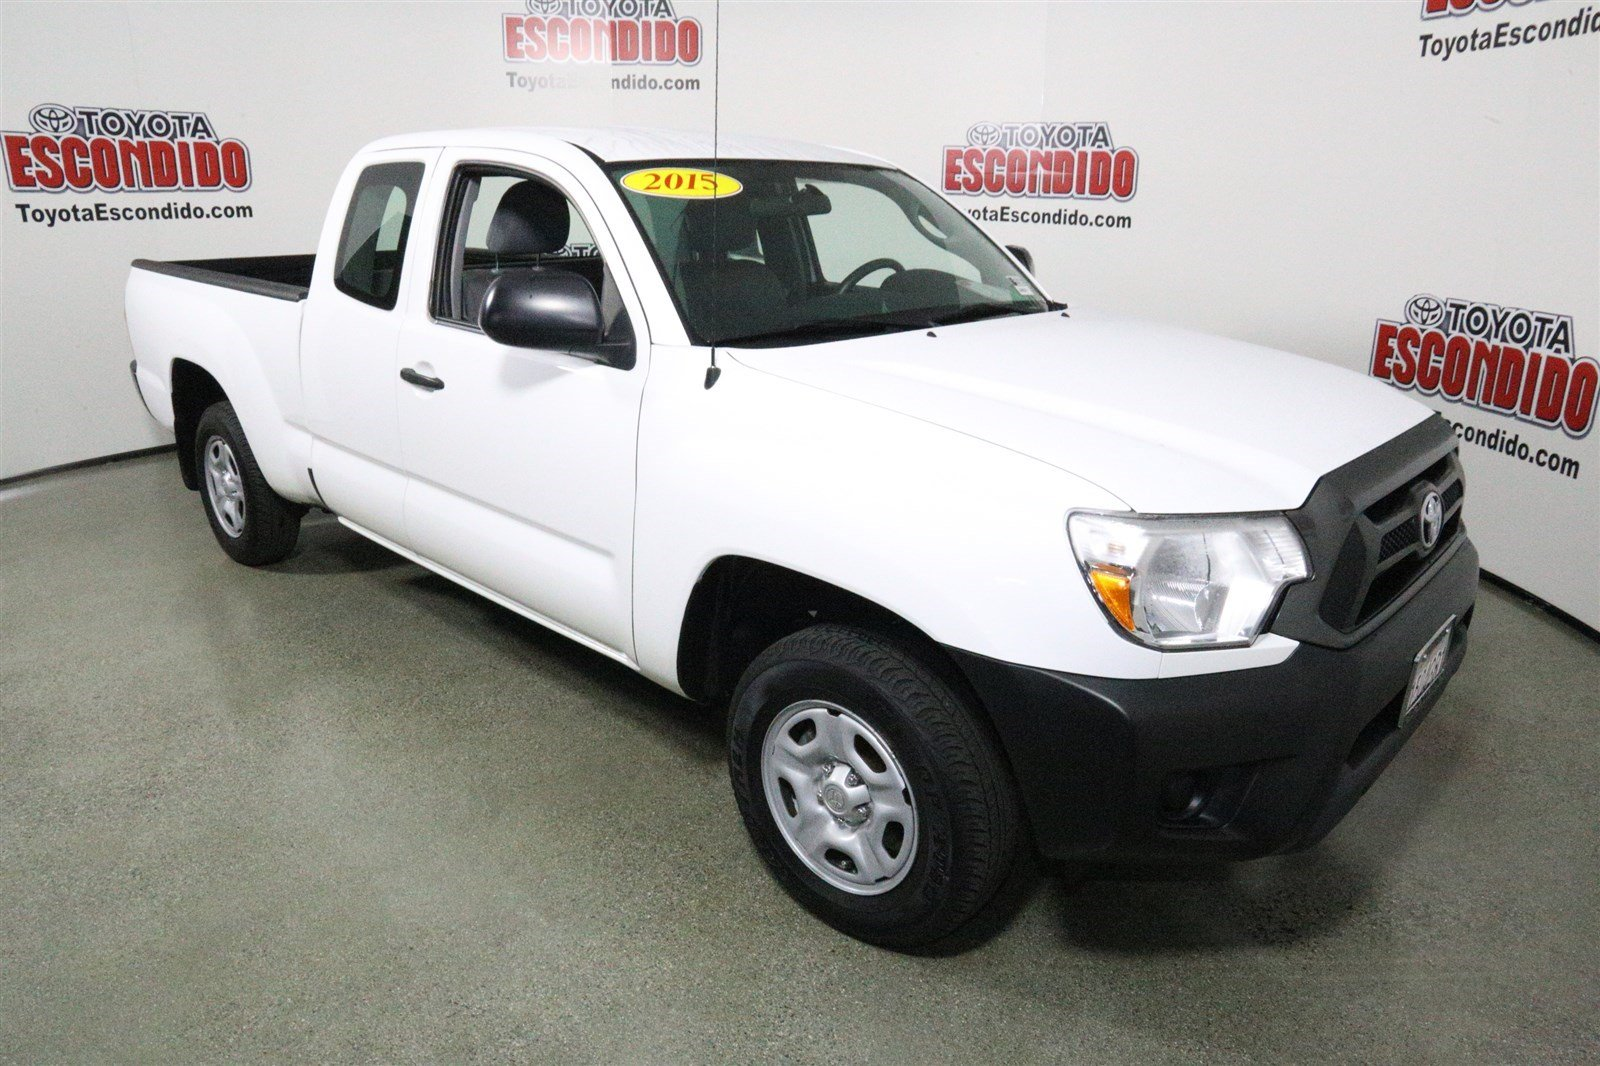 certified pre owned 2015 toyota tacoma extended cab pickup in escondido 59366 toyota of escondido. Black Bedroom Furniture Sets. Home Design Ideas